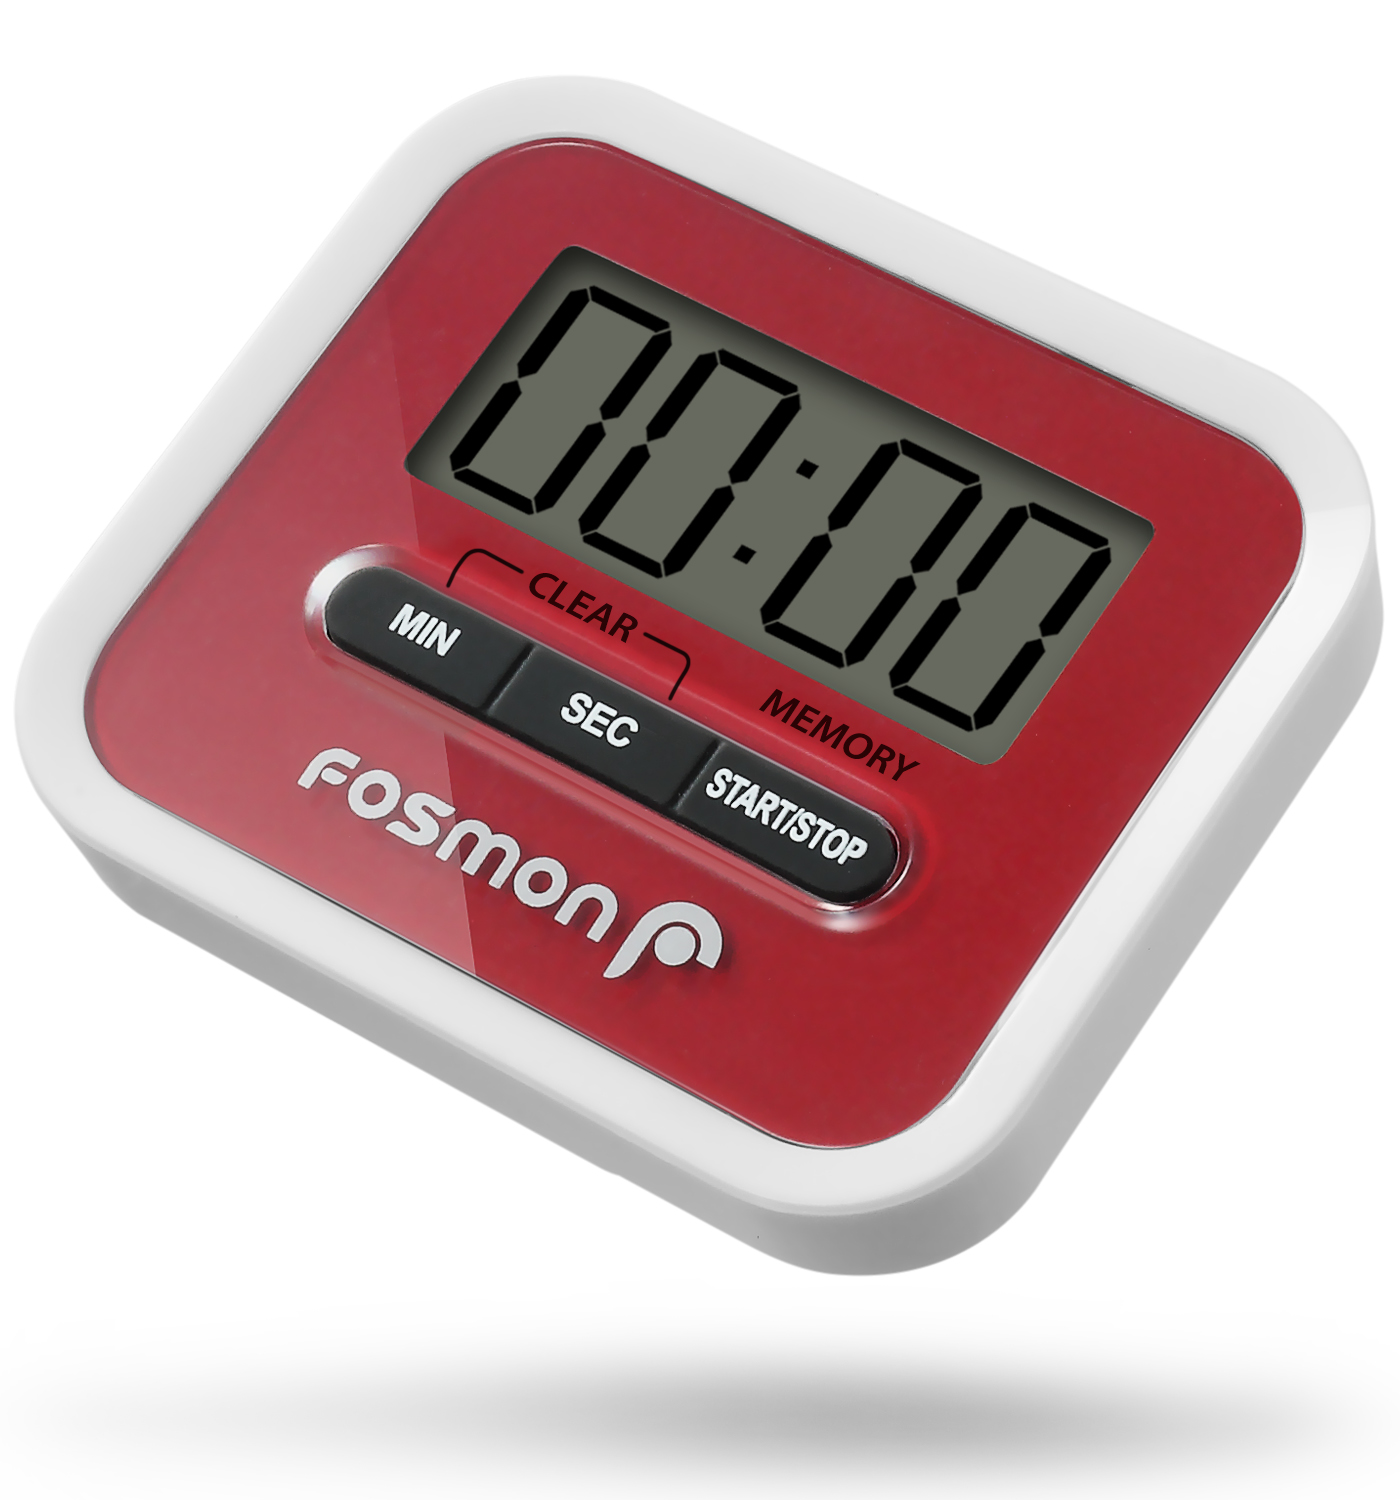 Fosmon Large Digital Screen Kitchen Timer, Loud Alarm with Magnetic Back, Stand and Handy Clip - White/Red